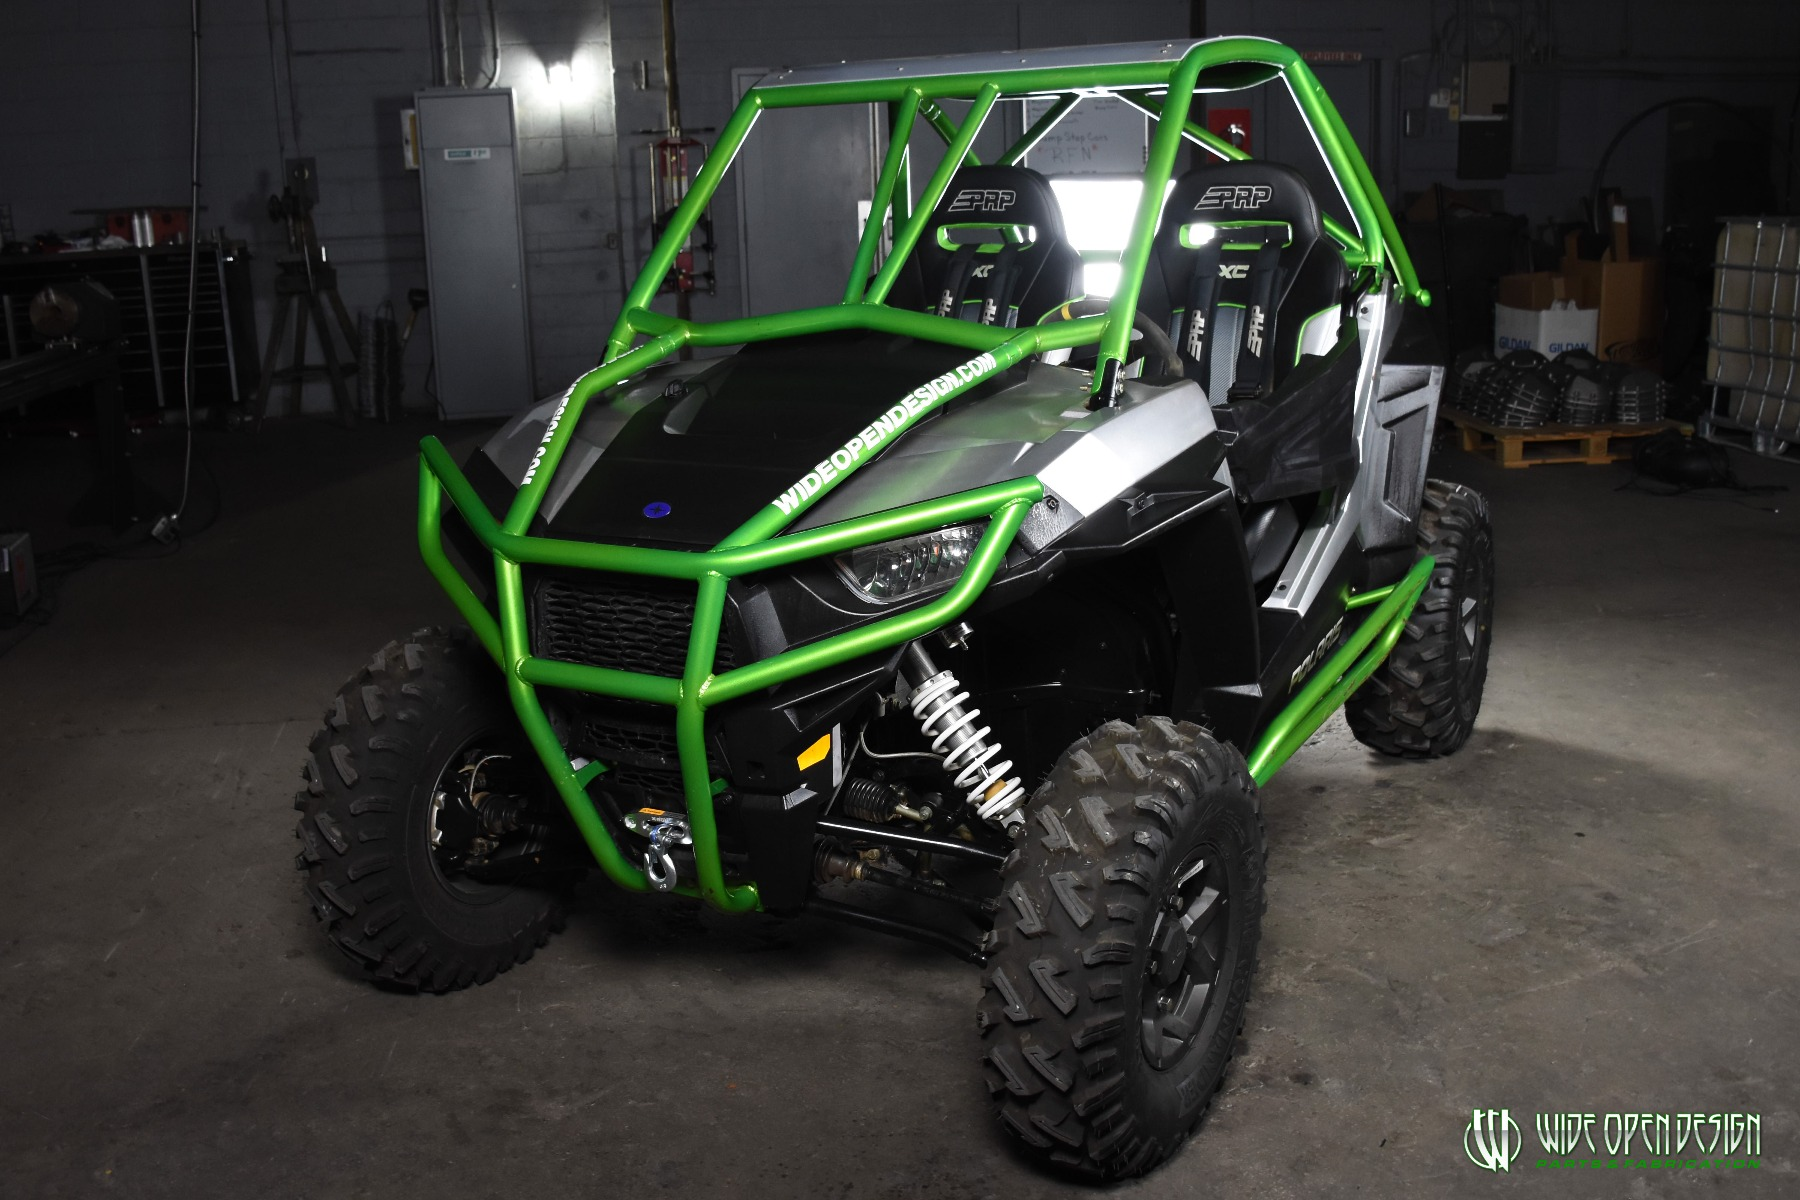 Jason's 1000s RZR with Wide Open Design Rolled Roof Cage, Front Bumper with Tie In, and Rocker Guards 6